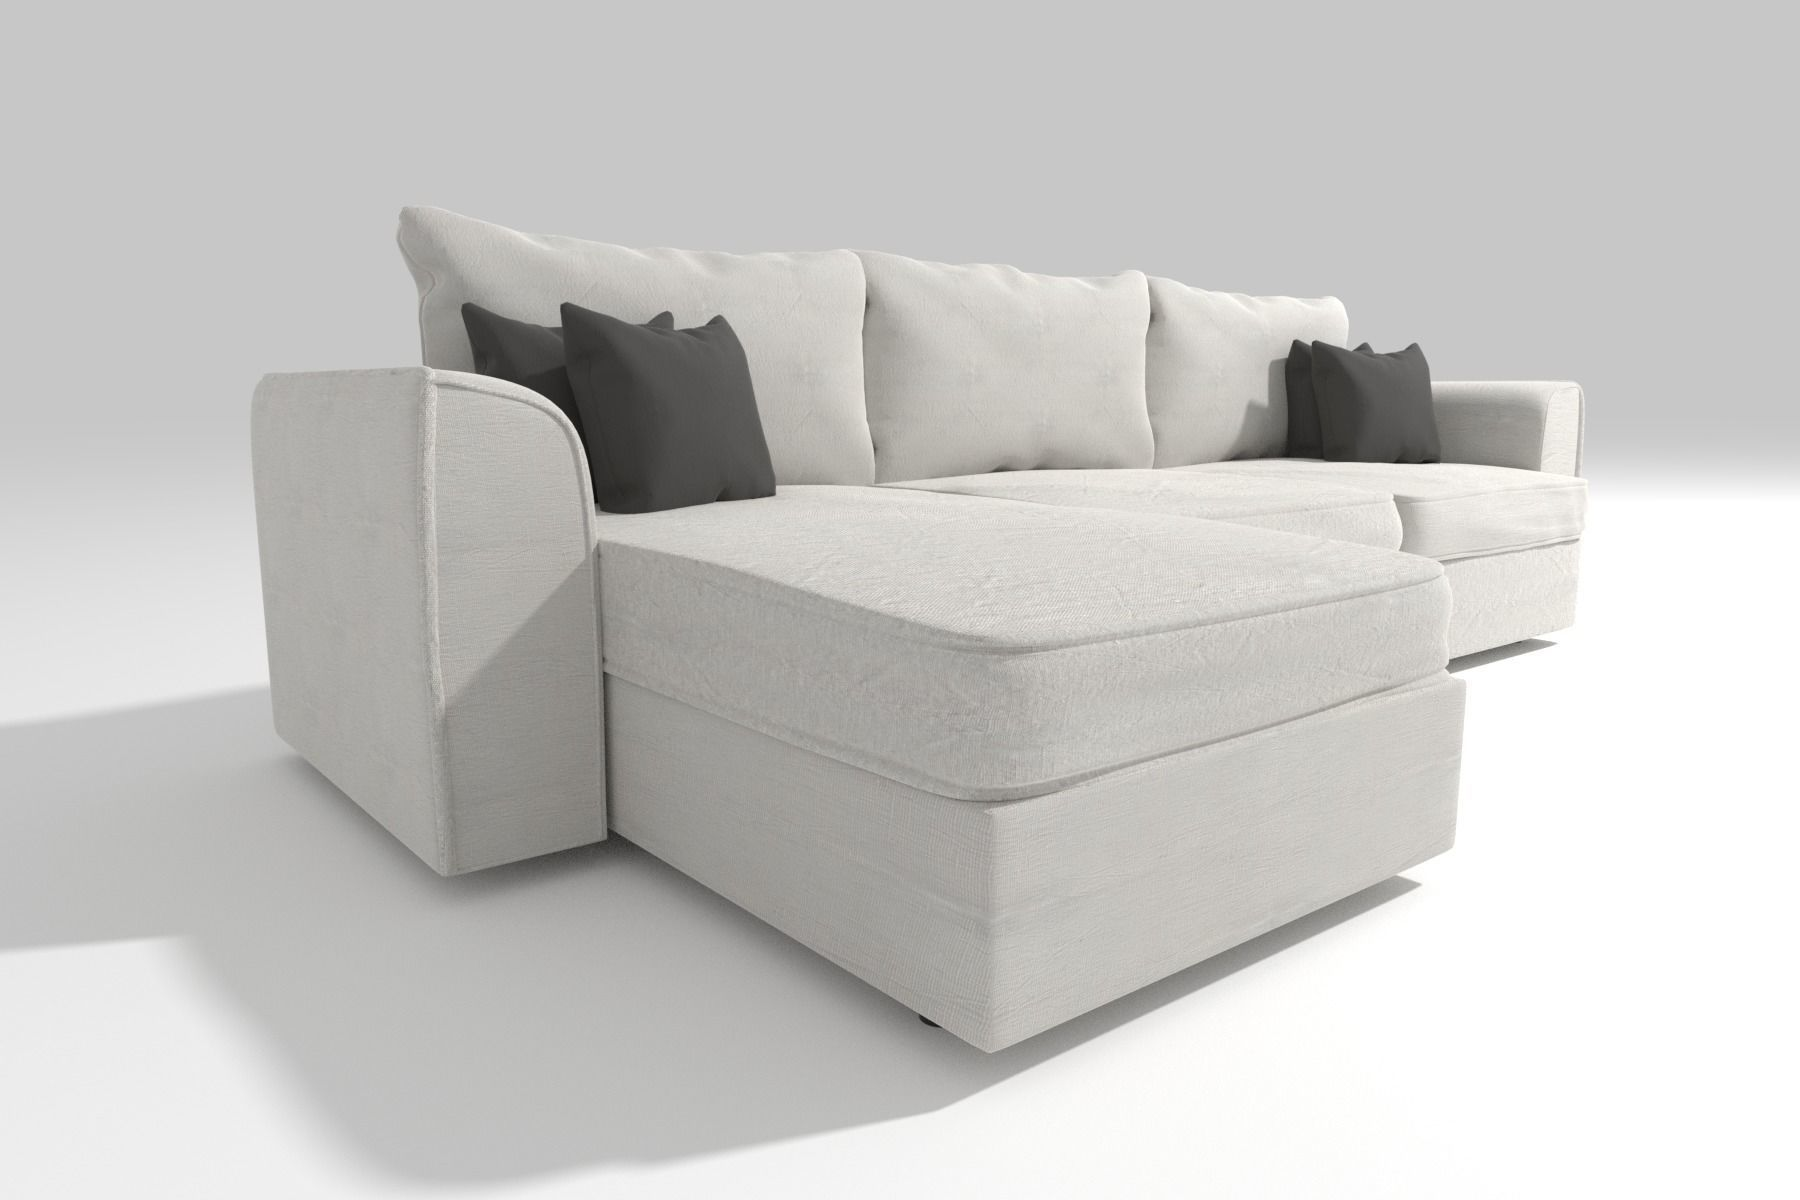 Sofa L Images L Shaped Sofa 4k Pbr Textures 3d Model